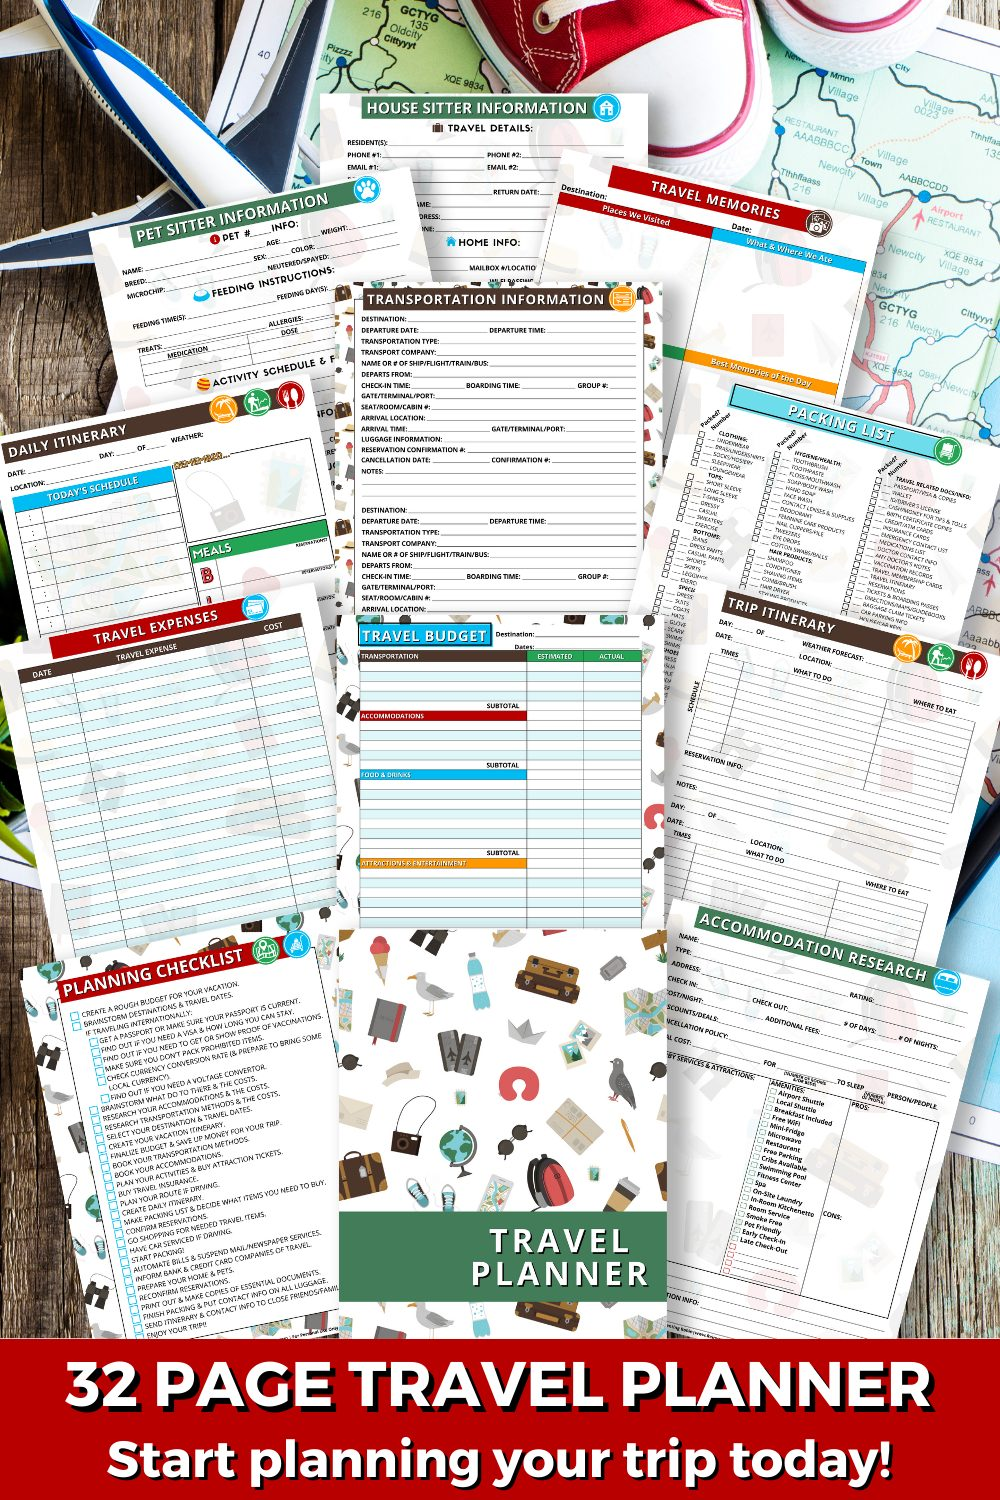 Travel Planner Printable pages are shown with the words 32 Page Travel Planner- Start planning your trip today!